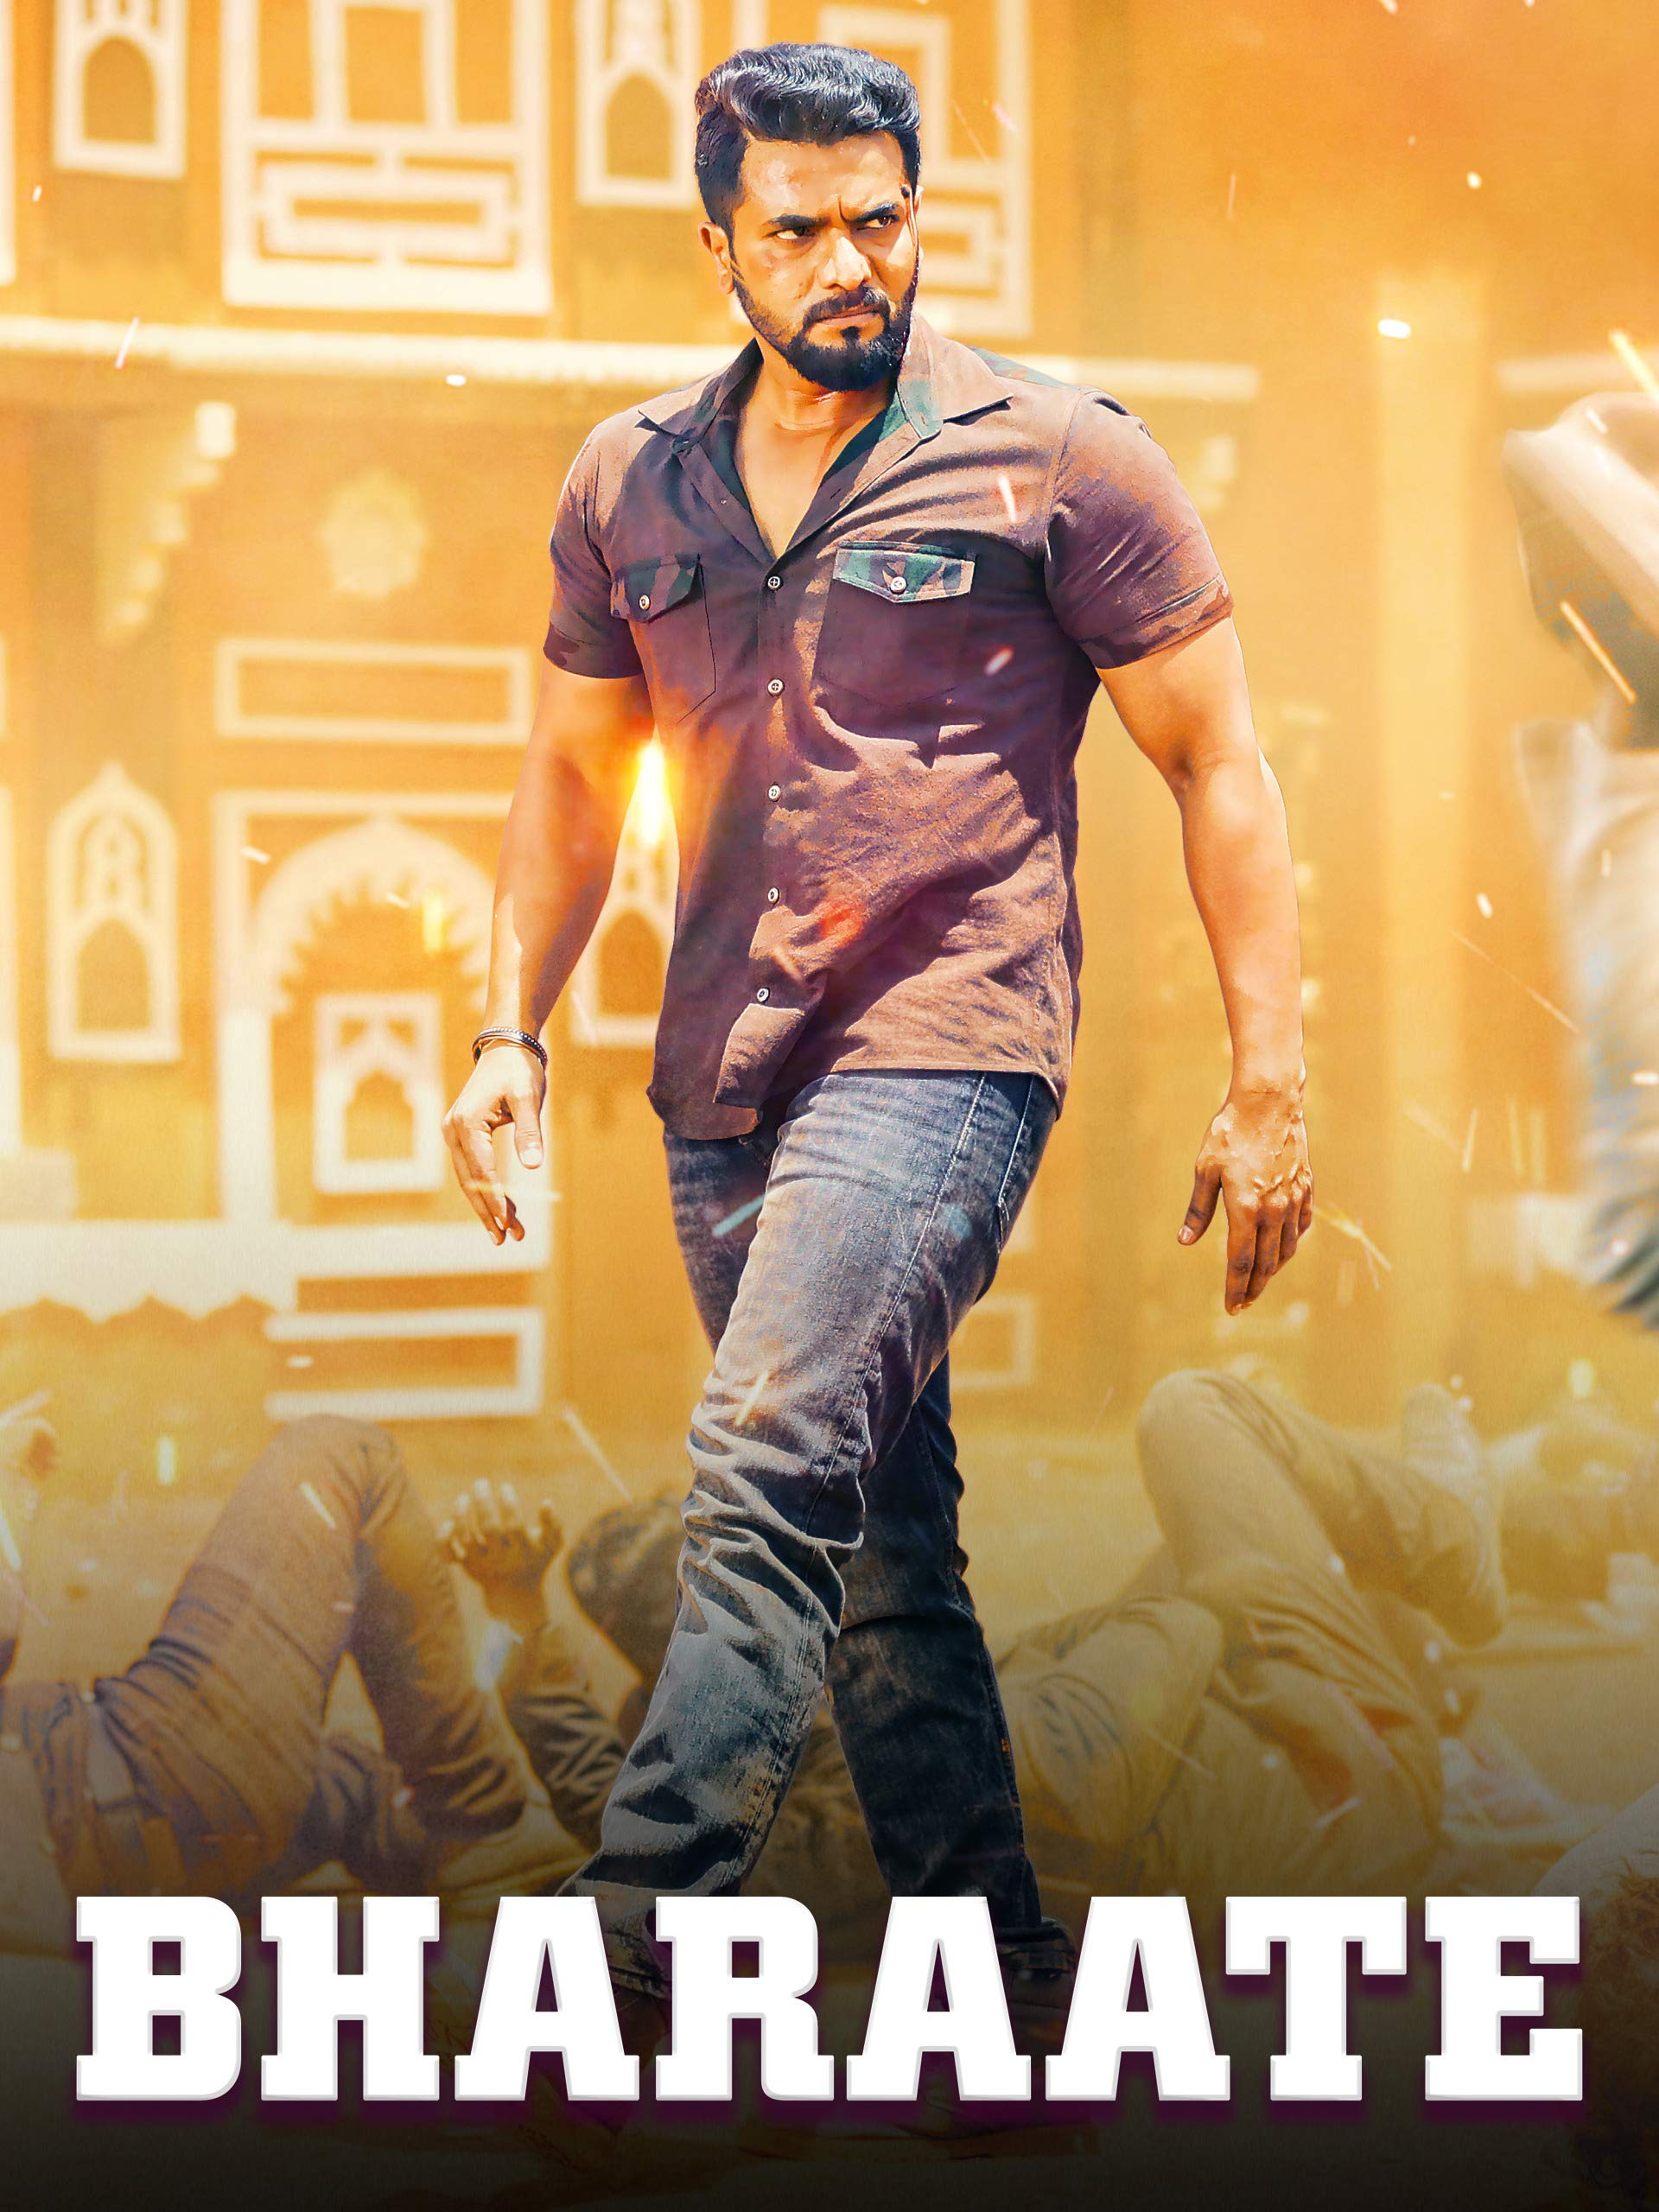 Bharaate (2020) Hindi Dubbed Official Trailer 1080p HDRip